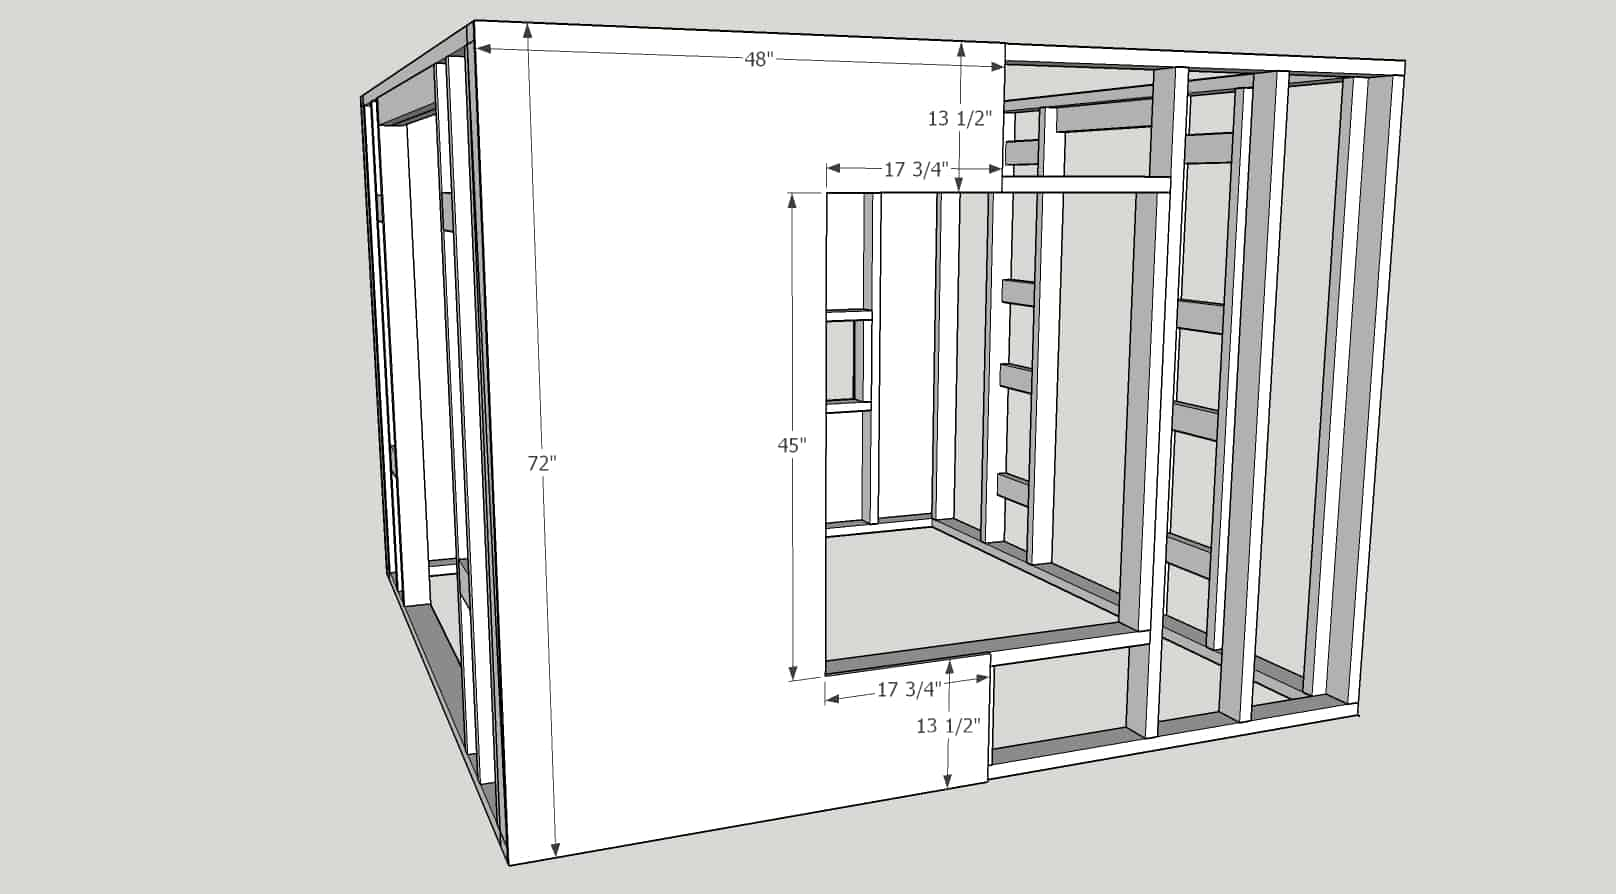 Plans for DIY Chicken Coop - Large size chicken coop with run